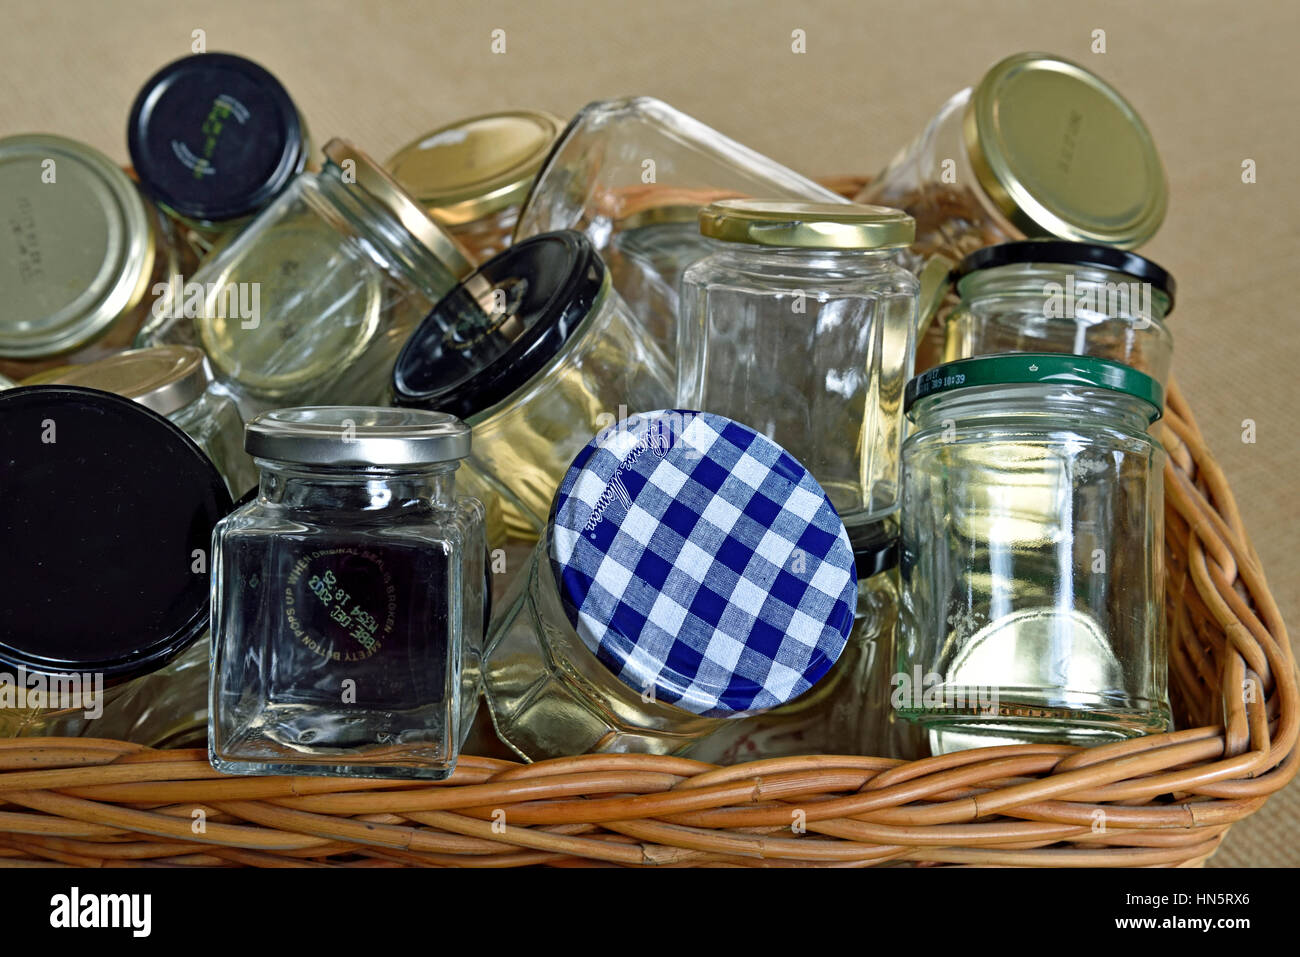 Empty glass jars in basket washed and ready for reuse, storage or recycling. - Stock Image